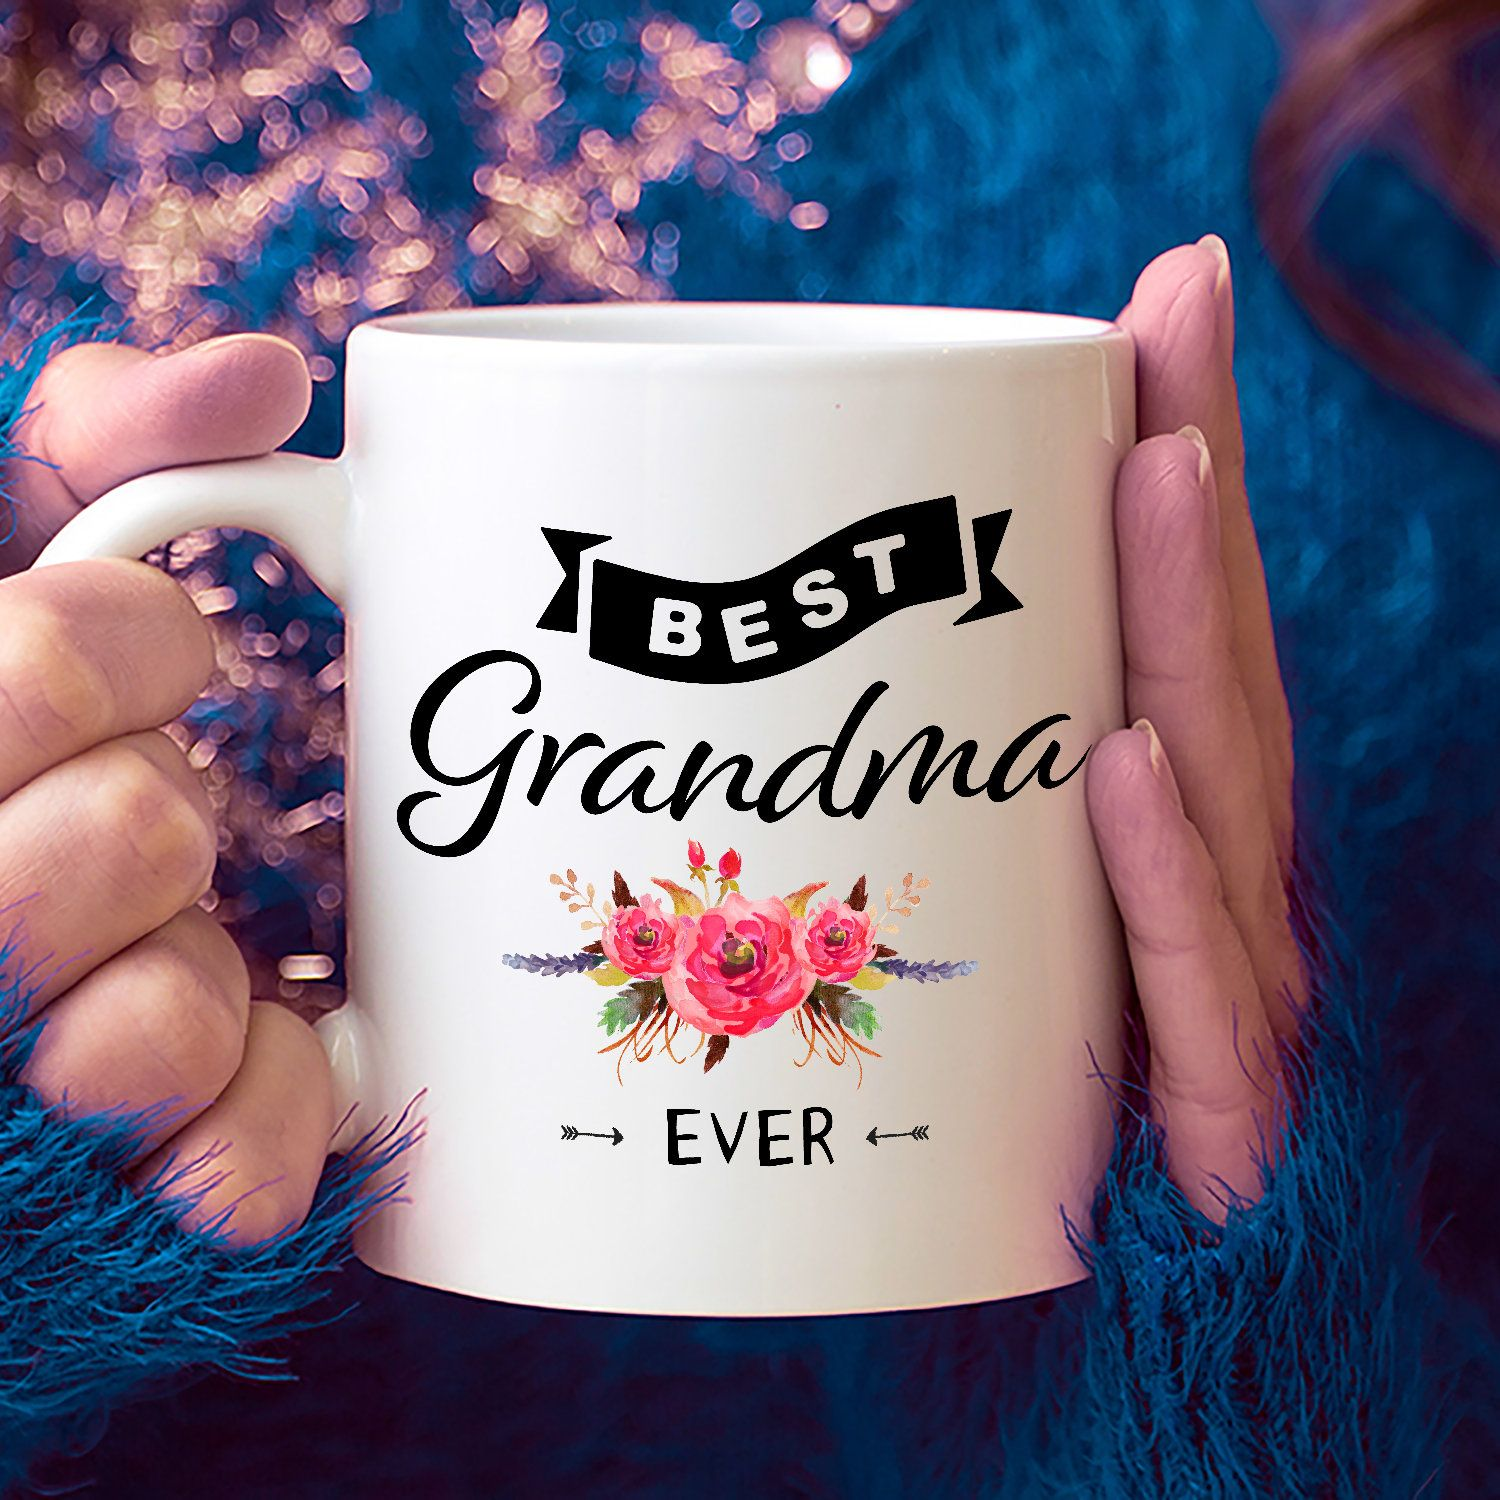 Best Grandma Ever Coffee Mug Gift For Grandmother Mothers Day New 90th Birthday Ideas 90 Year Old Woman By